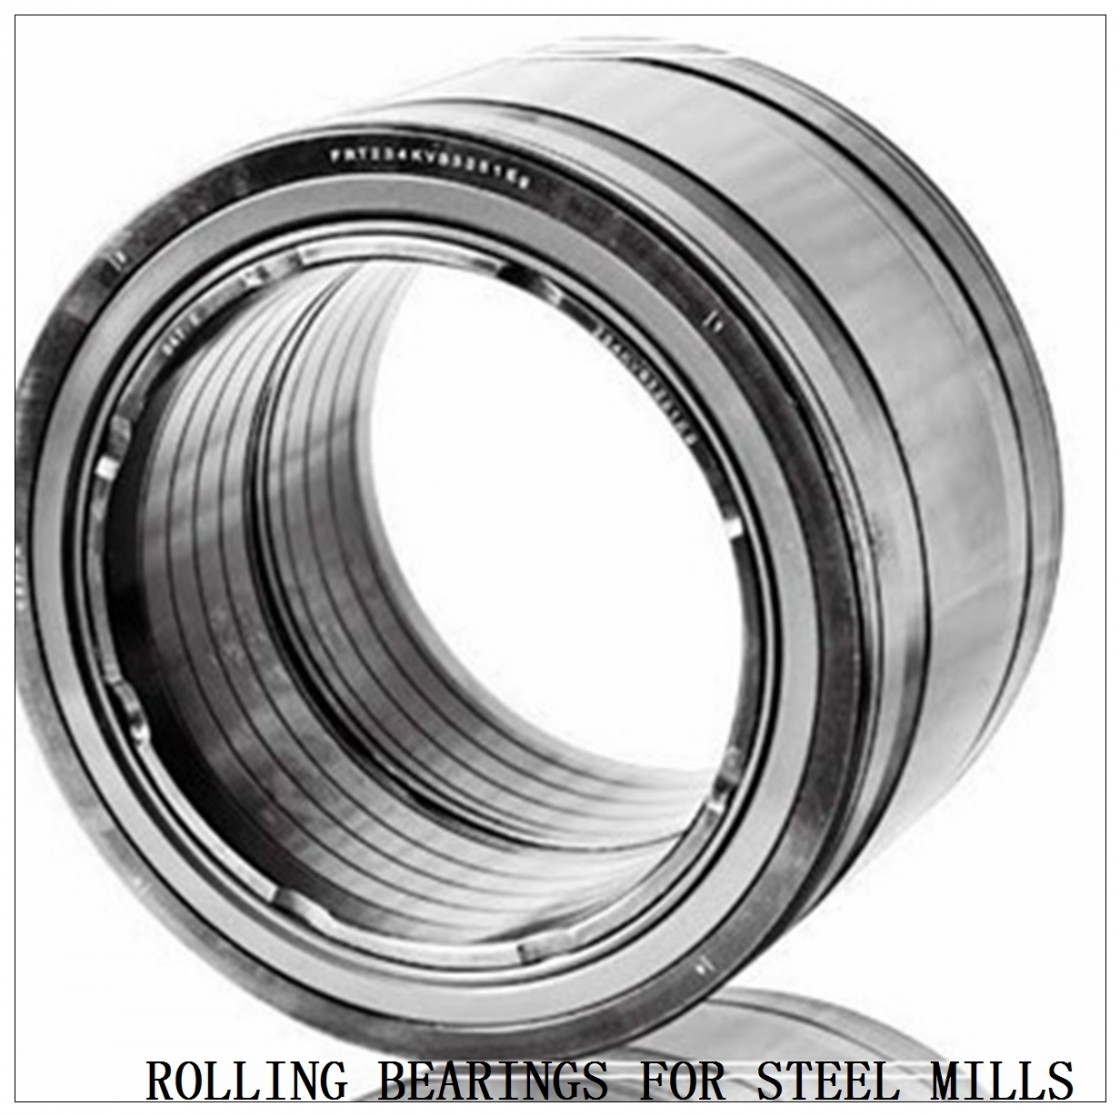 NSK 368KV5951 ROLLING BEARINGS FOR STEEL MILLS